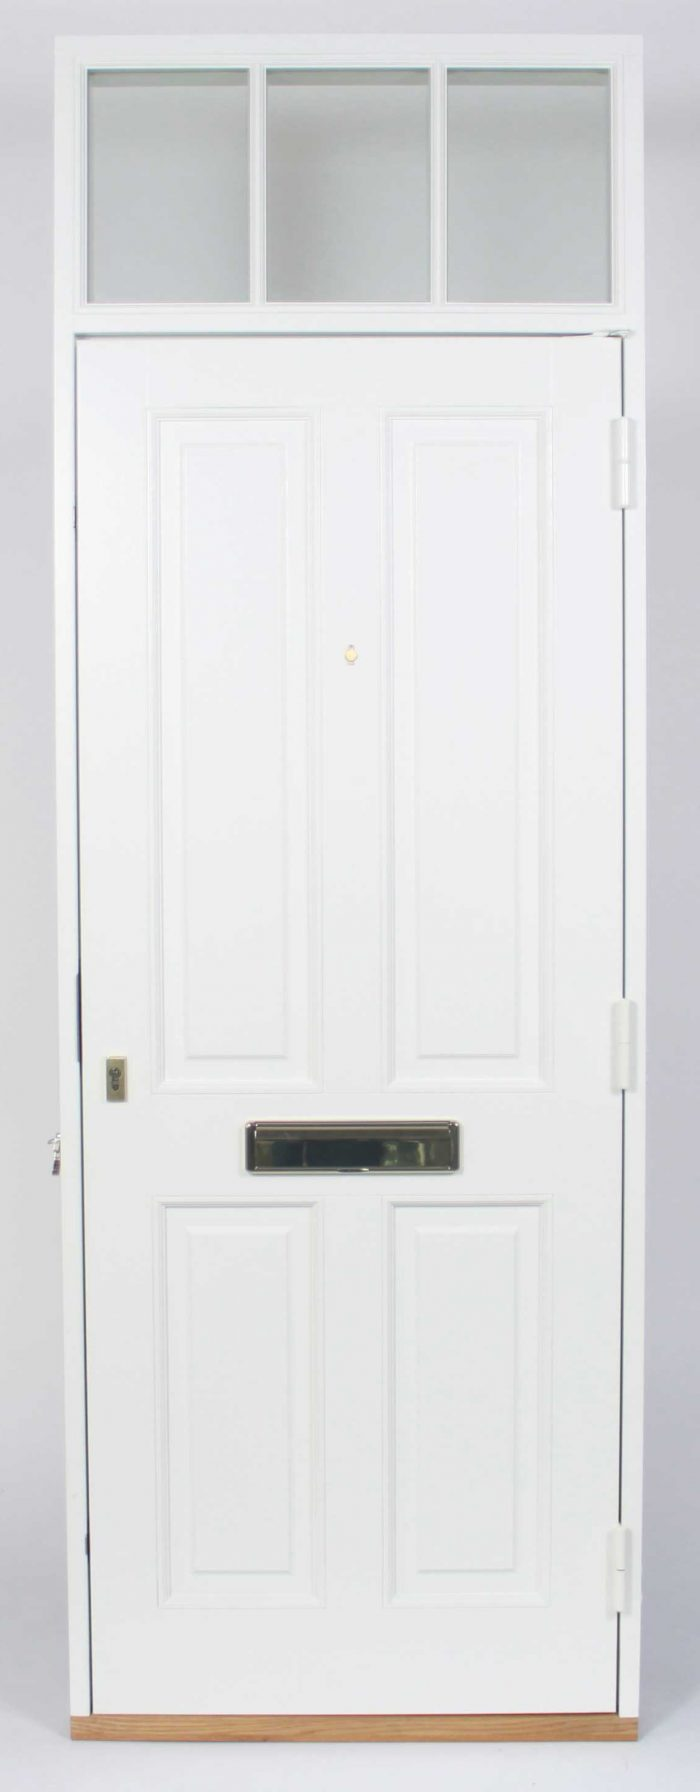 Gallery Image: External photo of panelled traditional front door with fixed fanlight above